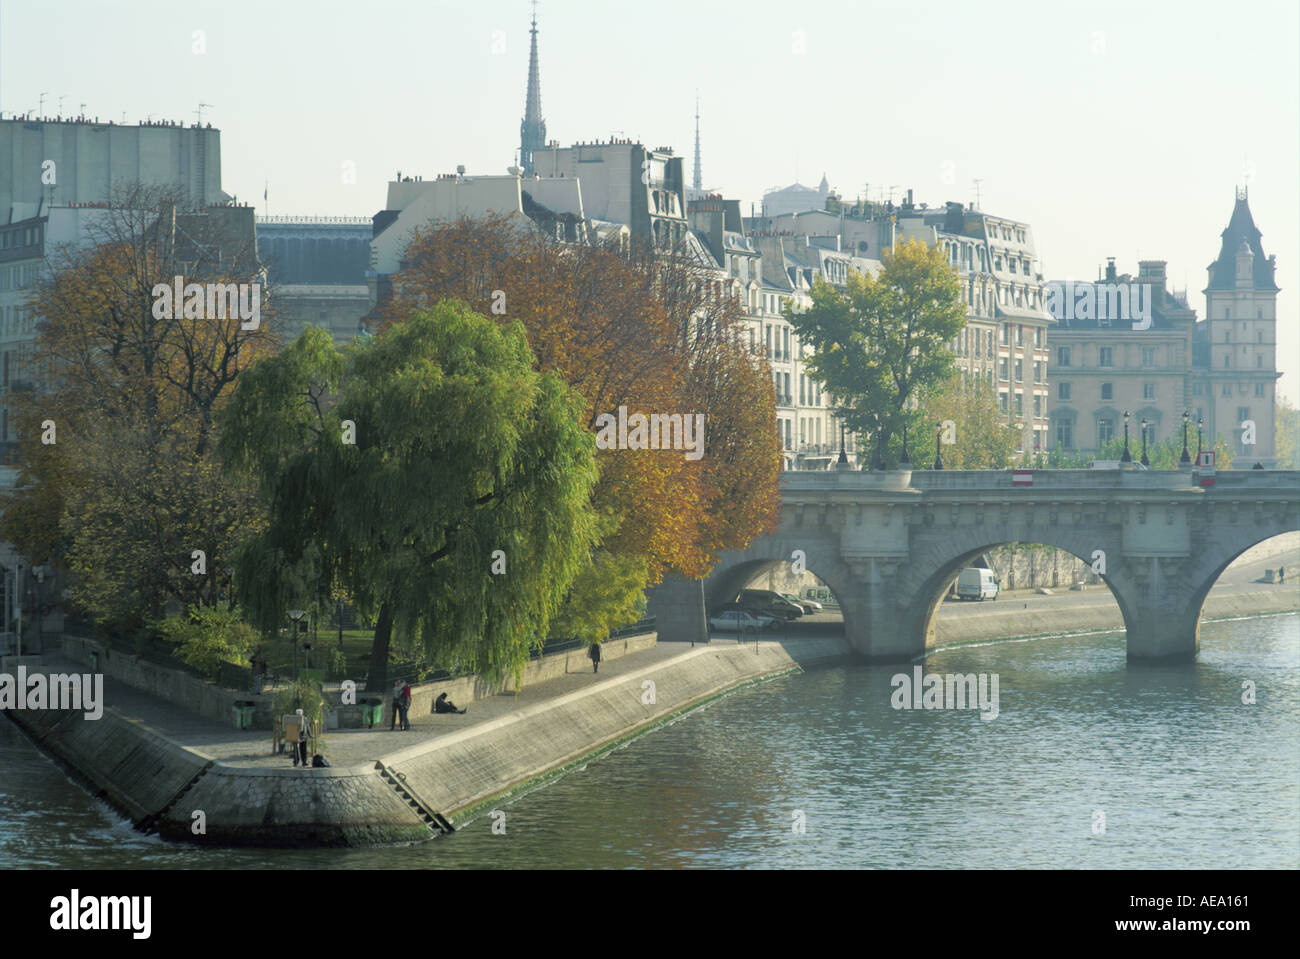 France Paris Ile Saint Louis And The Pont Neuf From The Pont Des Arts On The Seine River Banks At Fall - Stock Image